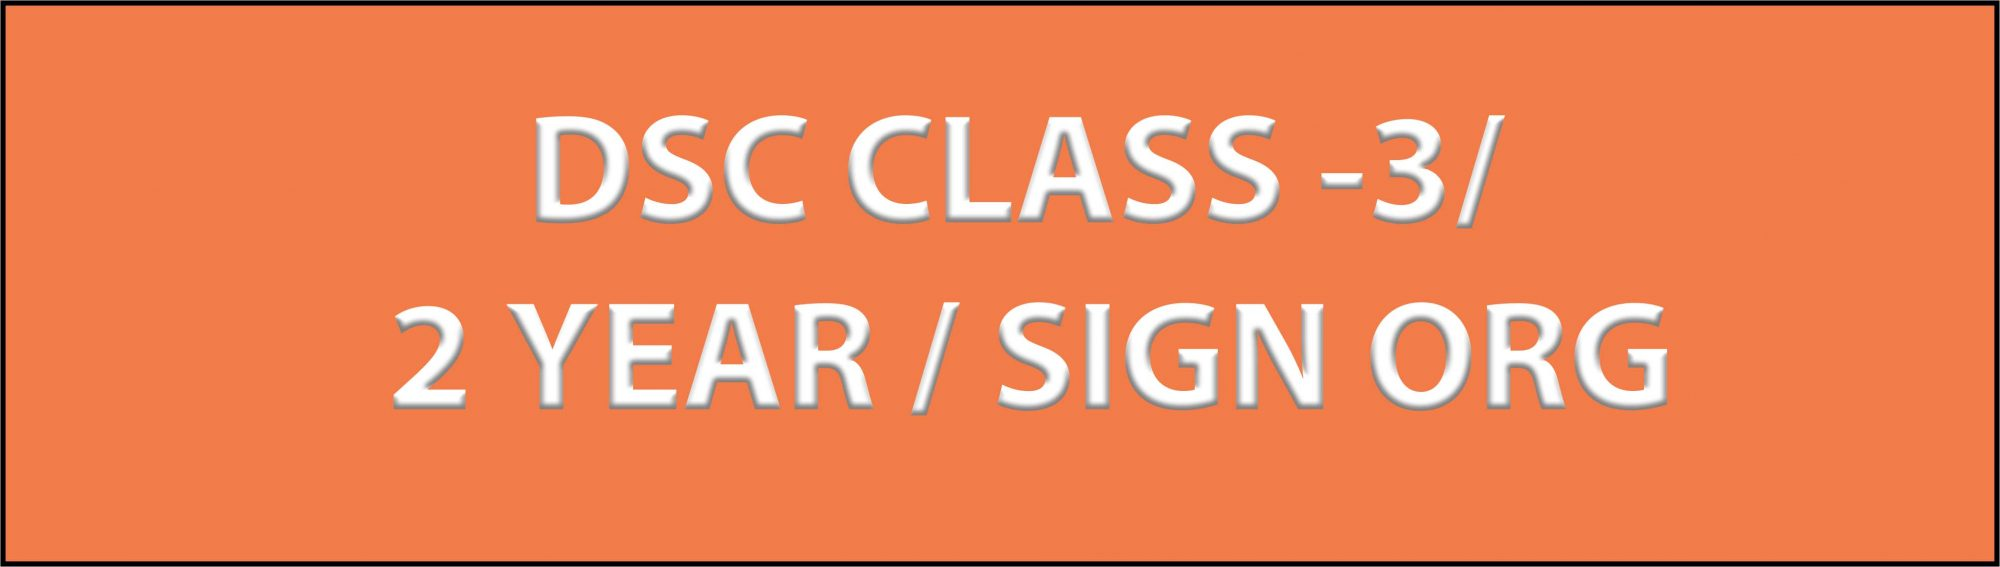 DSC CLASS 3 2 YEAR SIGN ORG scaled